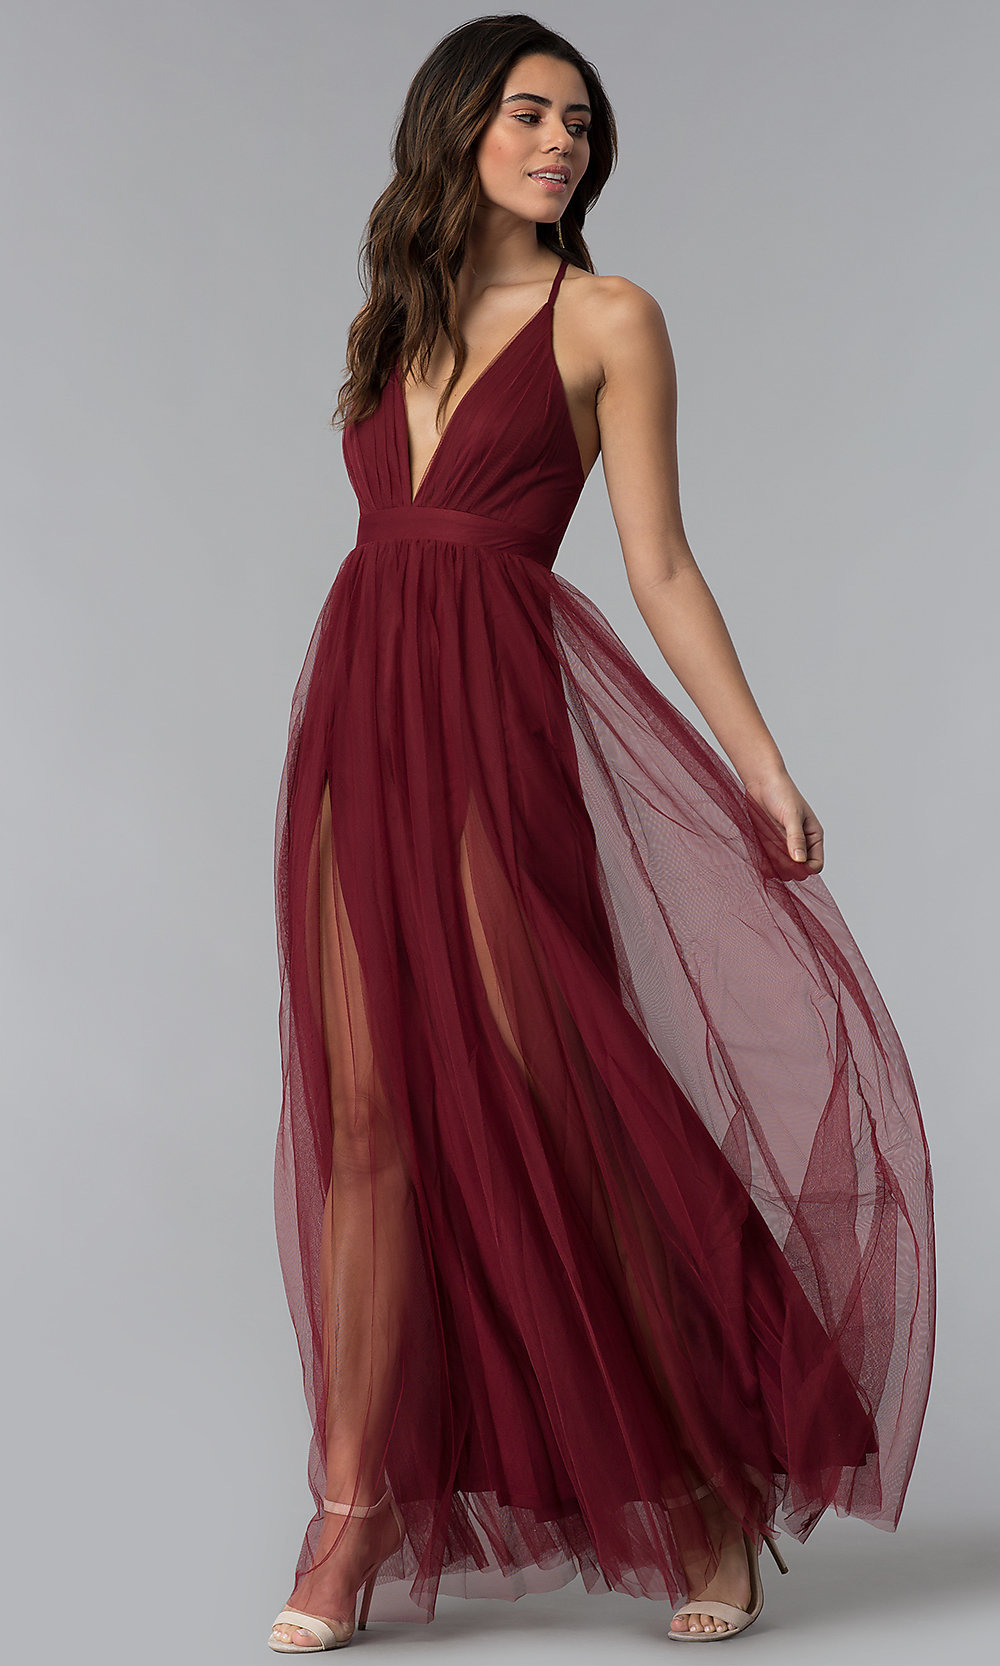 fa4b29f11fd6 Sexy Prom Dress With Deep V-Neckline - PromGirl